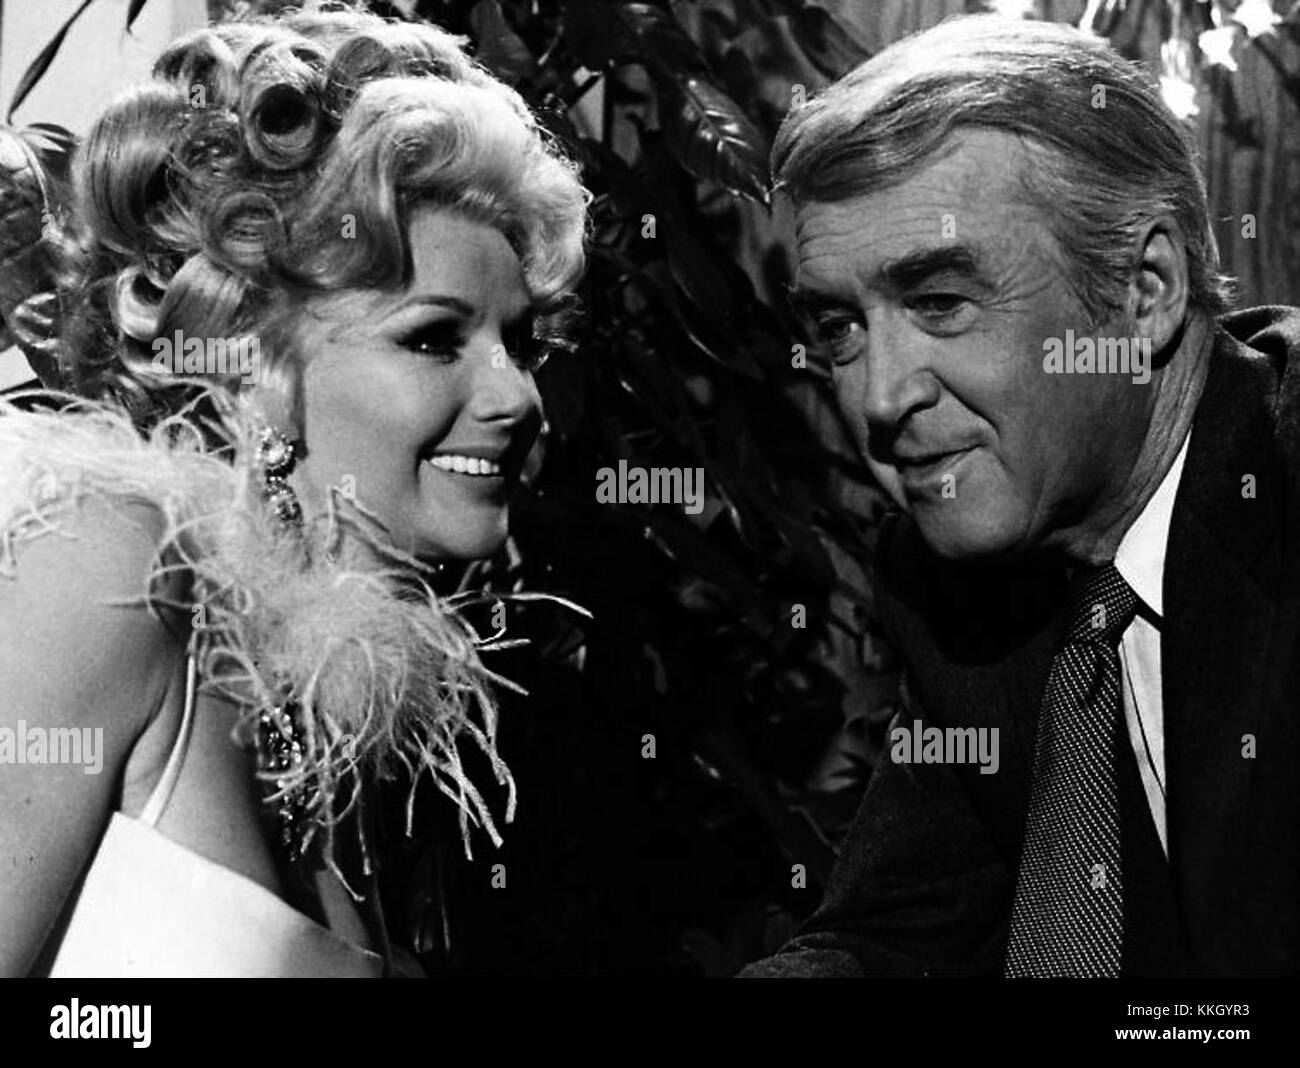 Jimmy Stewart Black and White Stock Photos & Images - Alamy